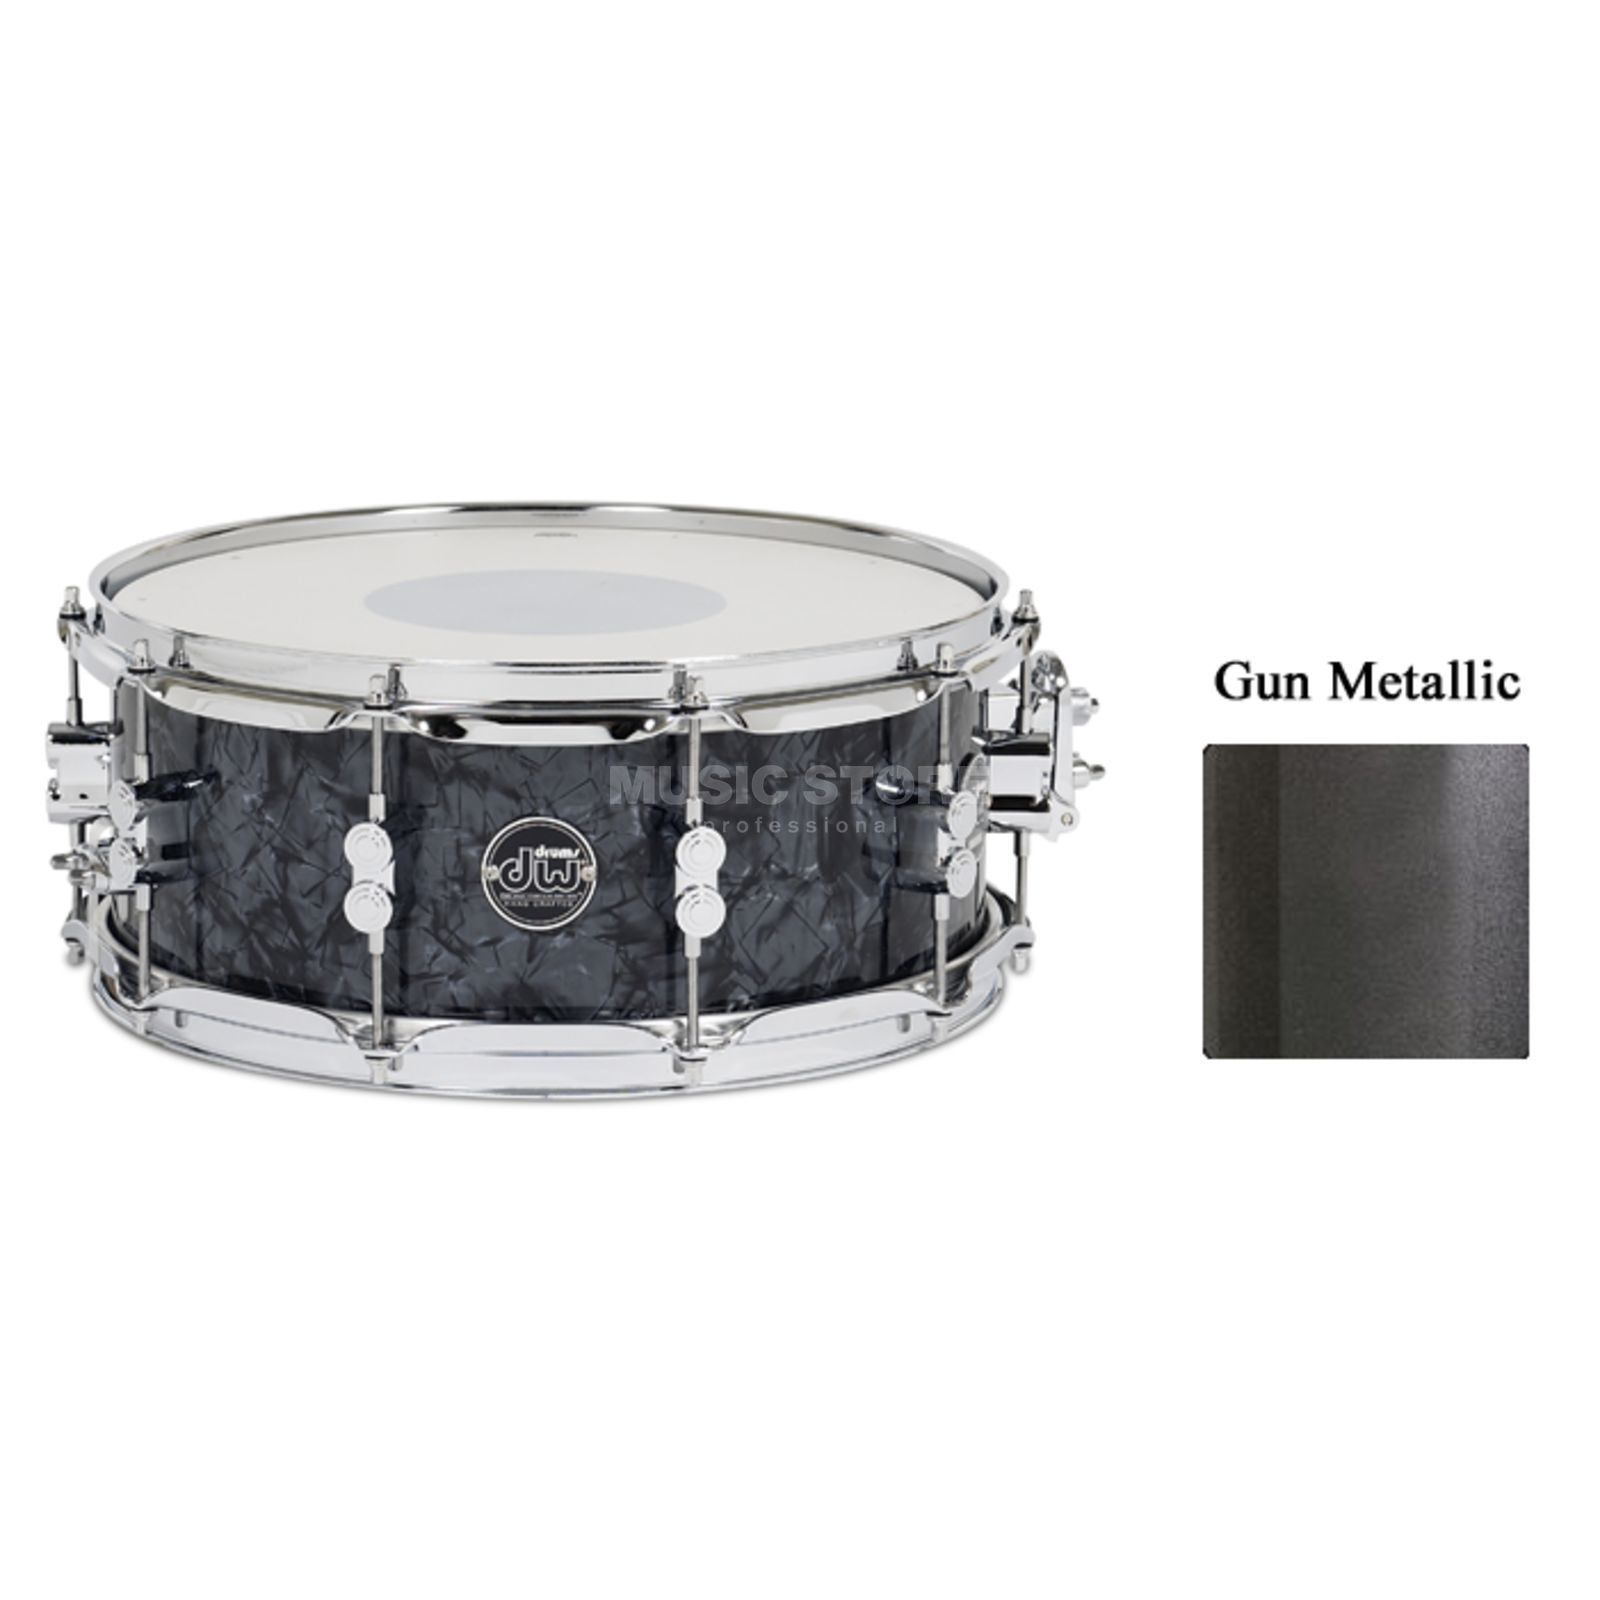 "Drum Workshop Performance Lacquer Snare, 14""x6,5"", Gun Metal Metallic Produktbild"